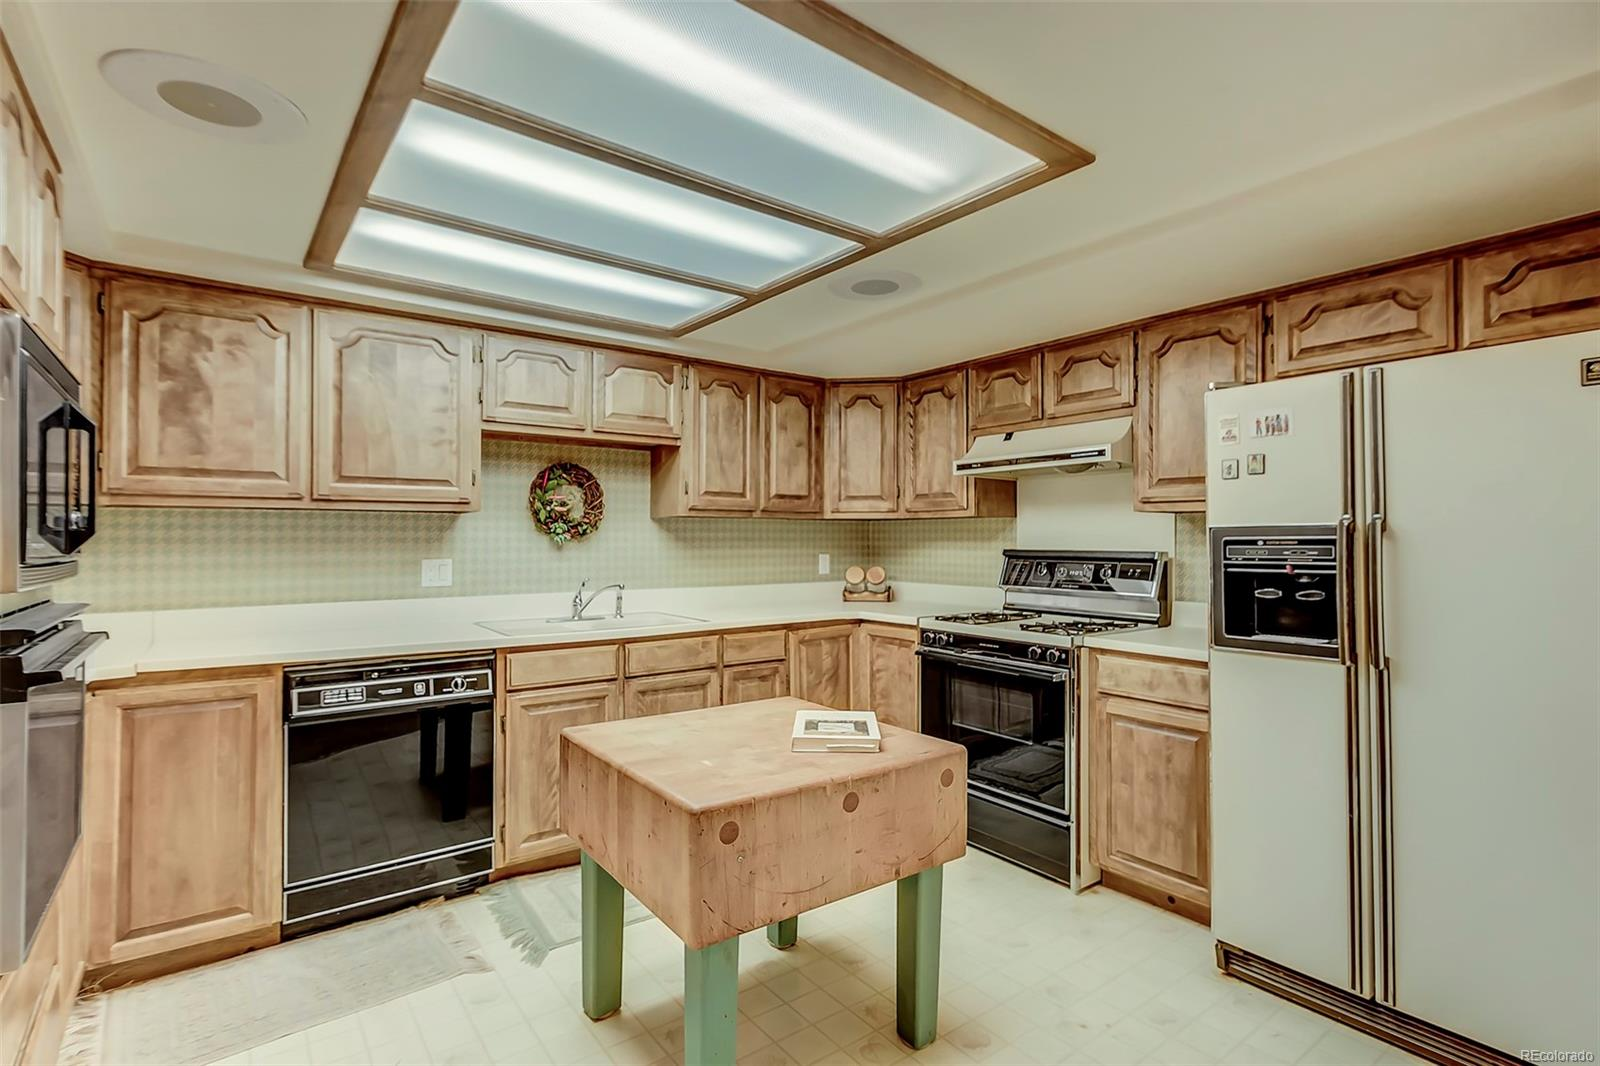 Full kitchen in basement -- mother-in-law suite?